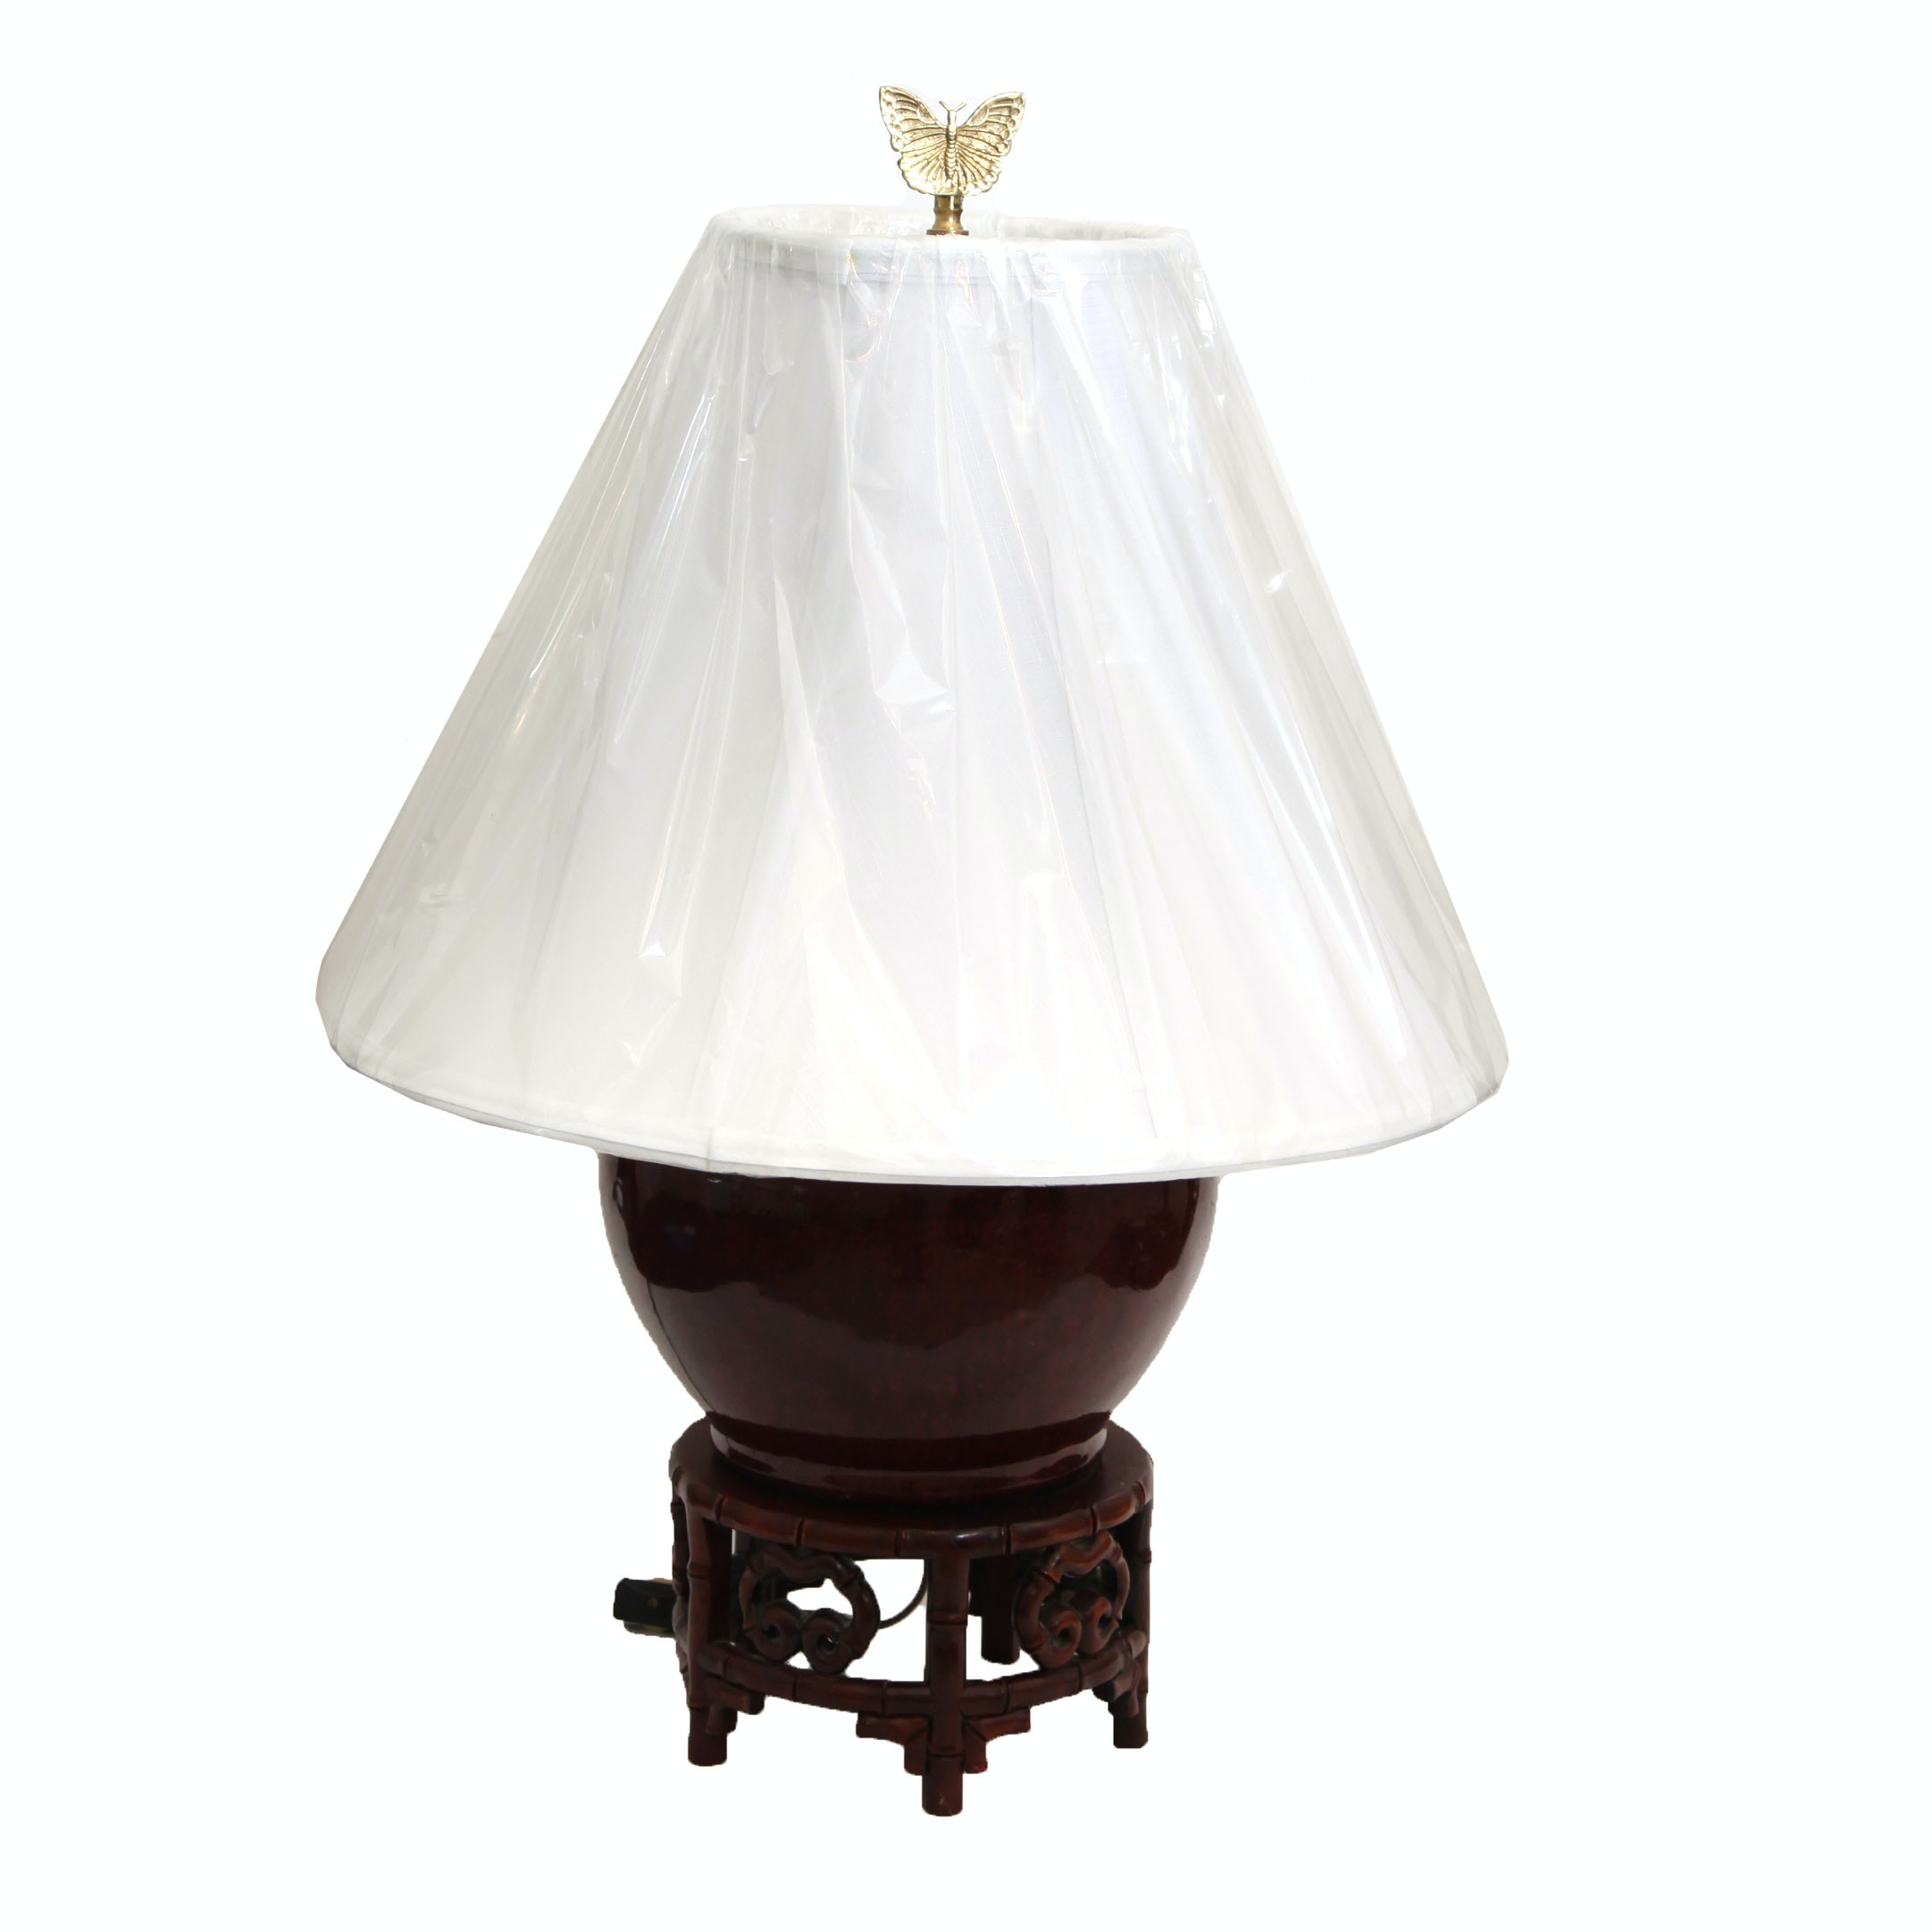 Wooden Table Lamp with Carved Base